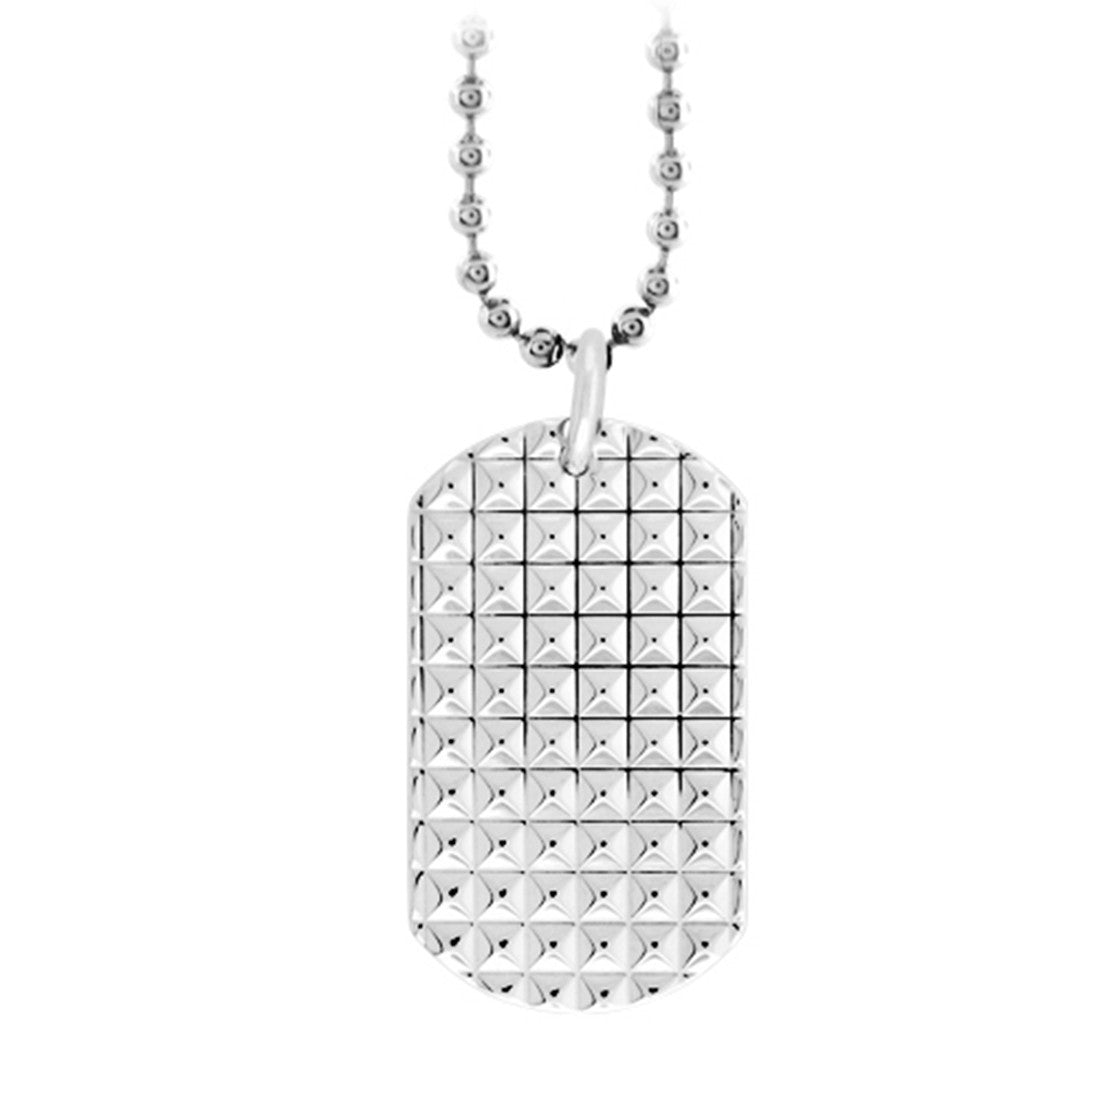 Inox Jewelry Men's Stainless Steel Ornate Engrave able Dog Tag Necklace